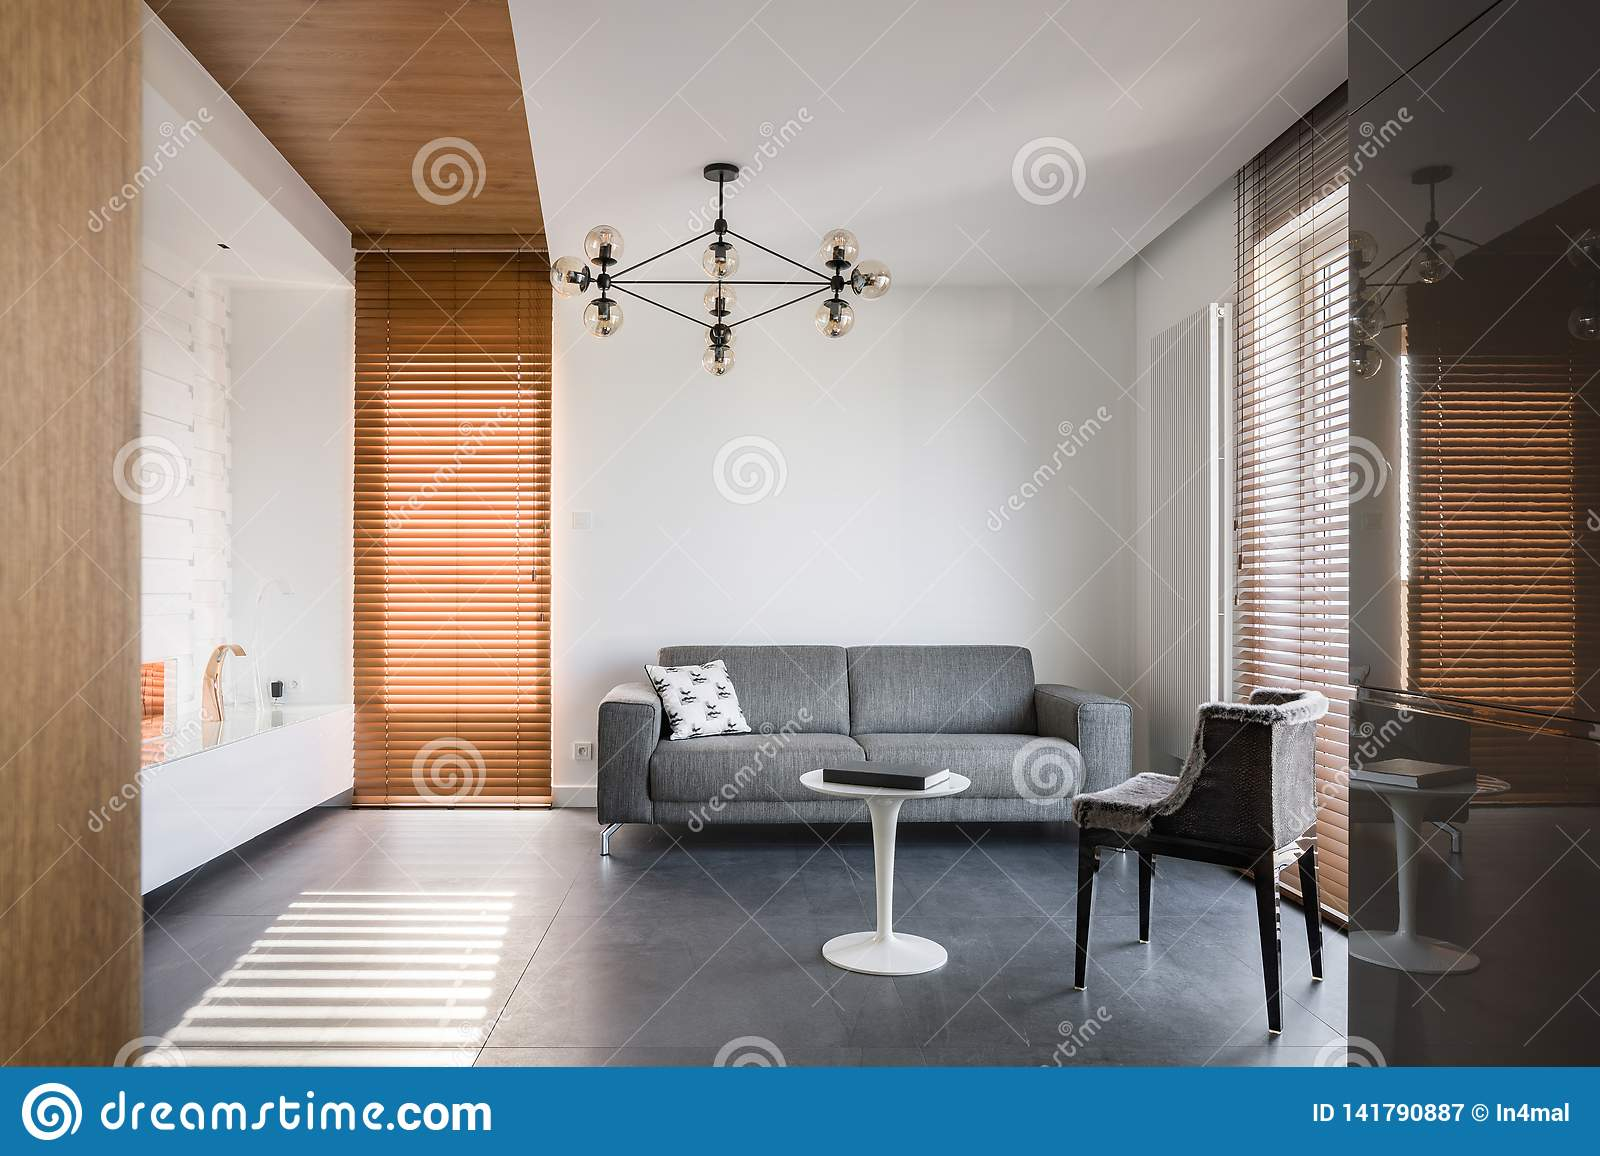 1 063 Living Room Wooden Blinds Photos Free Royalty Free Stock Photos From Dreamstime